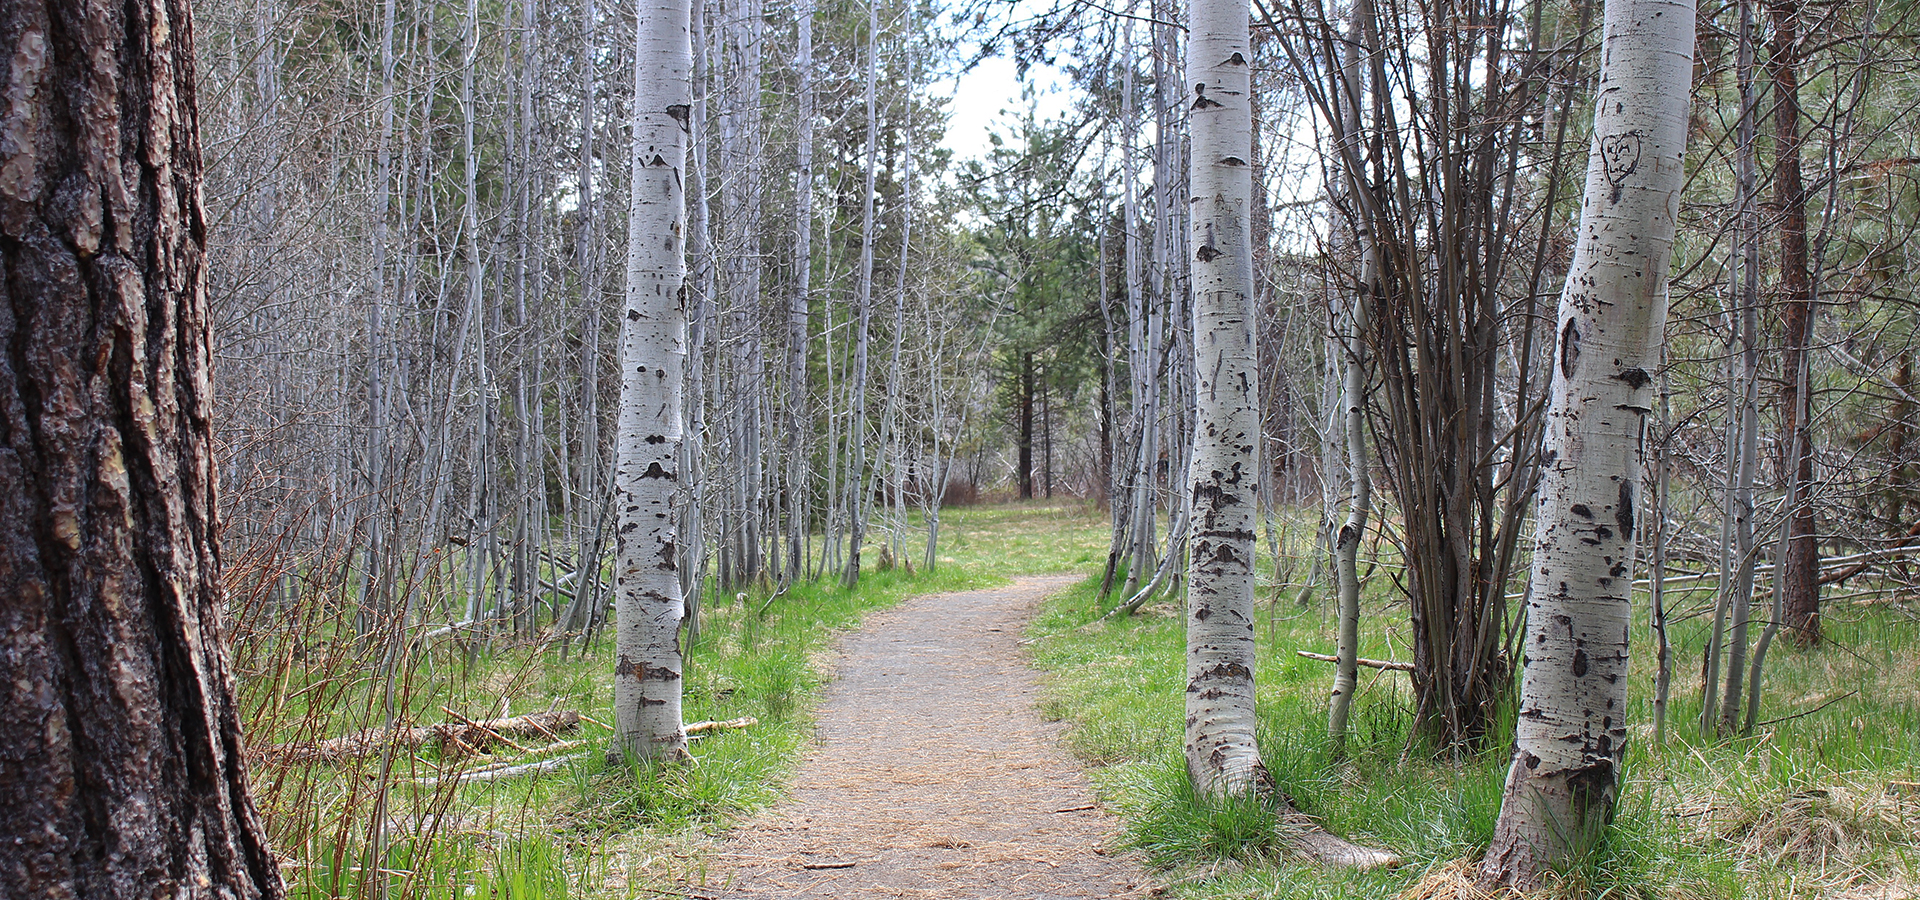 Image of a dirt portion of the Shevlin Park Trail running through an Aspen Grove in Shevlin Park.